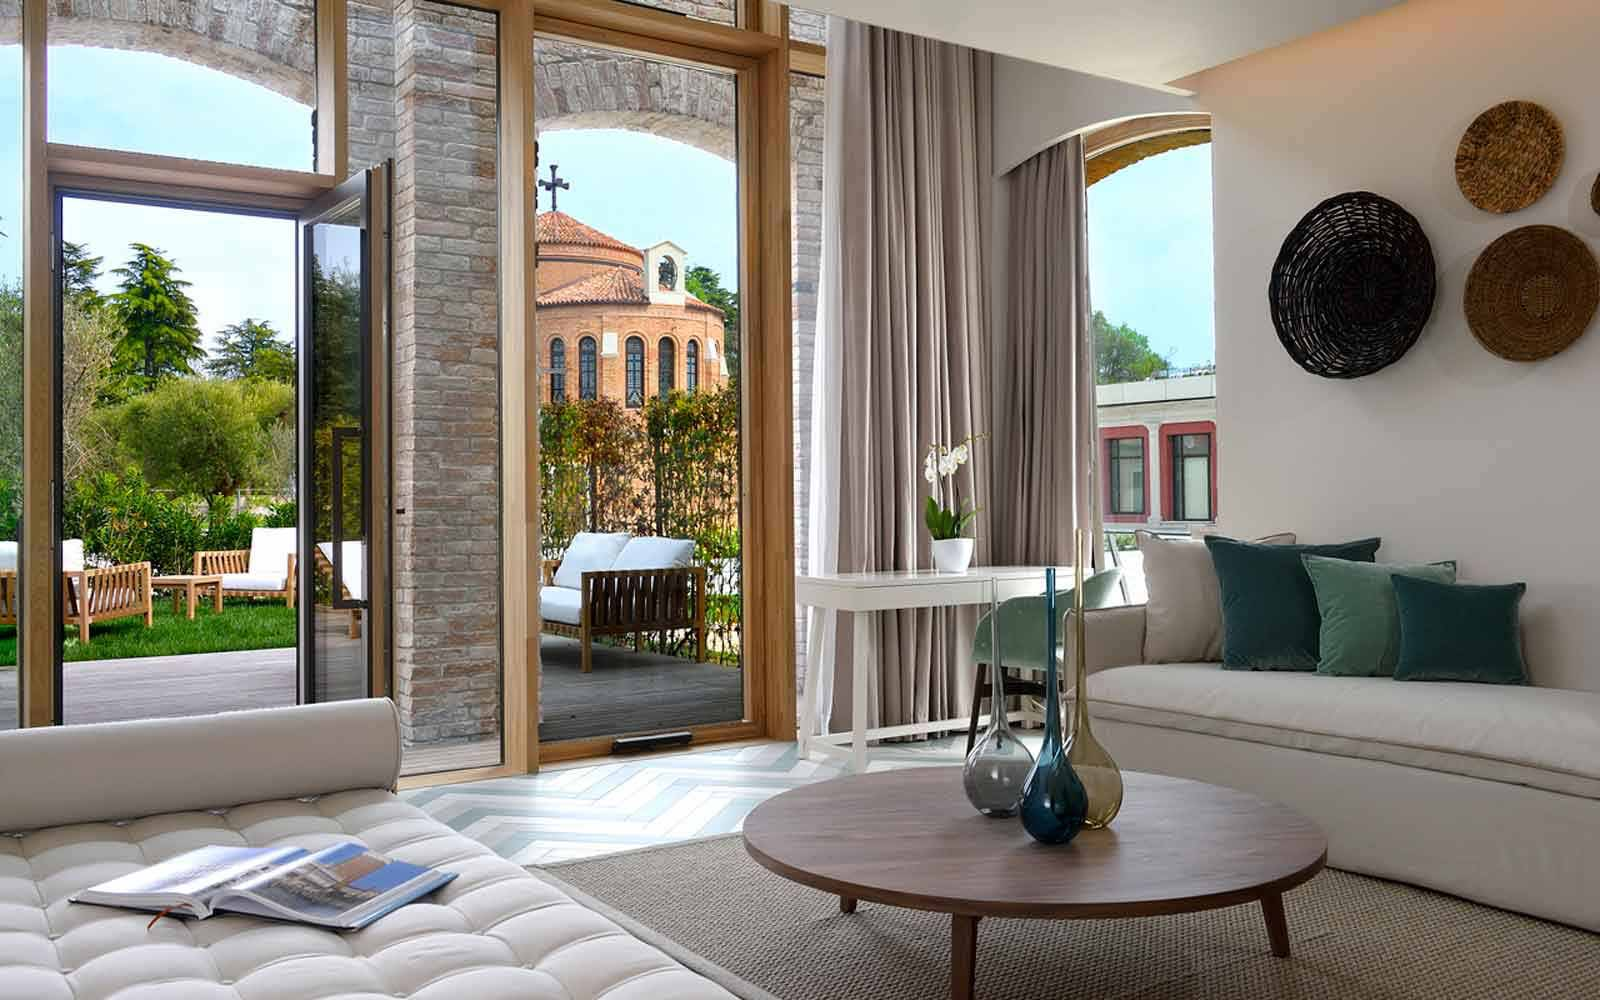 JW Marriott Venice Resort & Spa: room / property / locale photo. Image 14